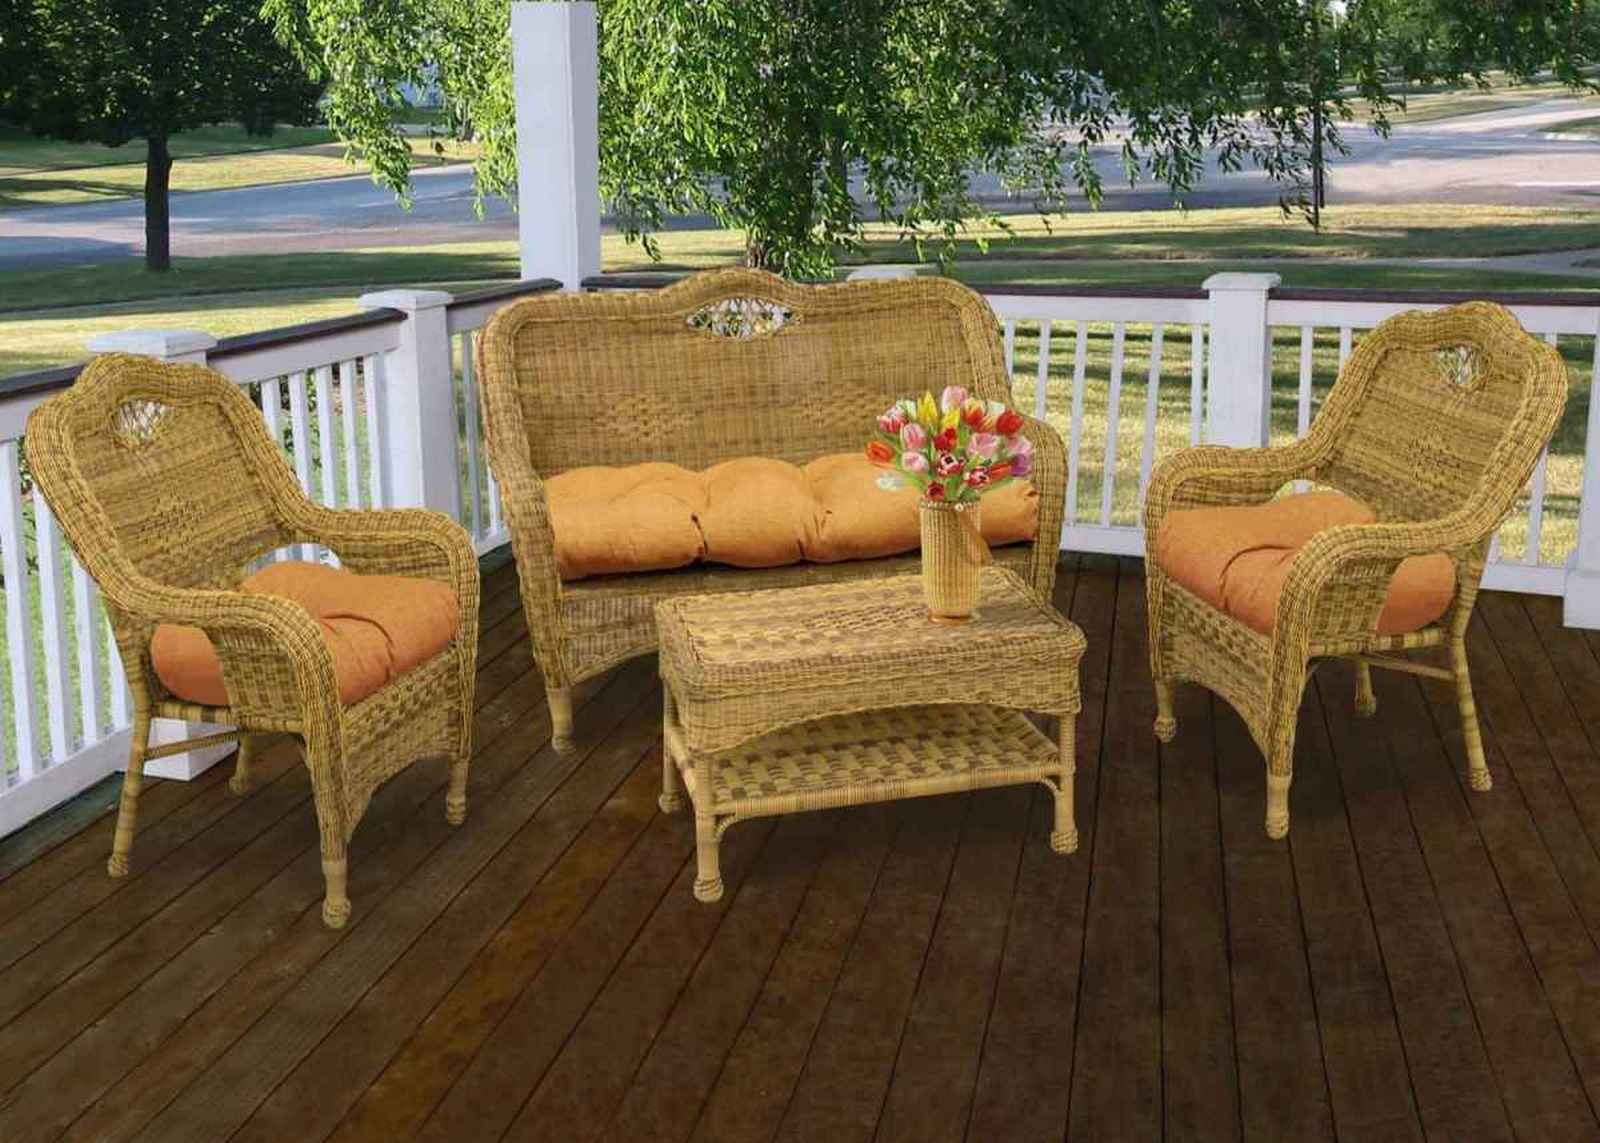 Uncategorized How To Make Wicker Furniture patio furniture in wicker minimalist home design pinterest fully have small flower vase on table top above wood floor beside white wall as fences outdoor